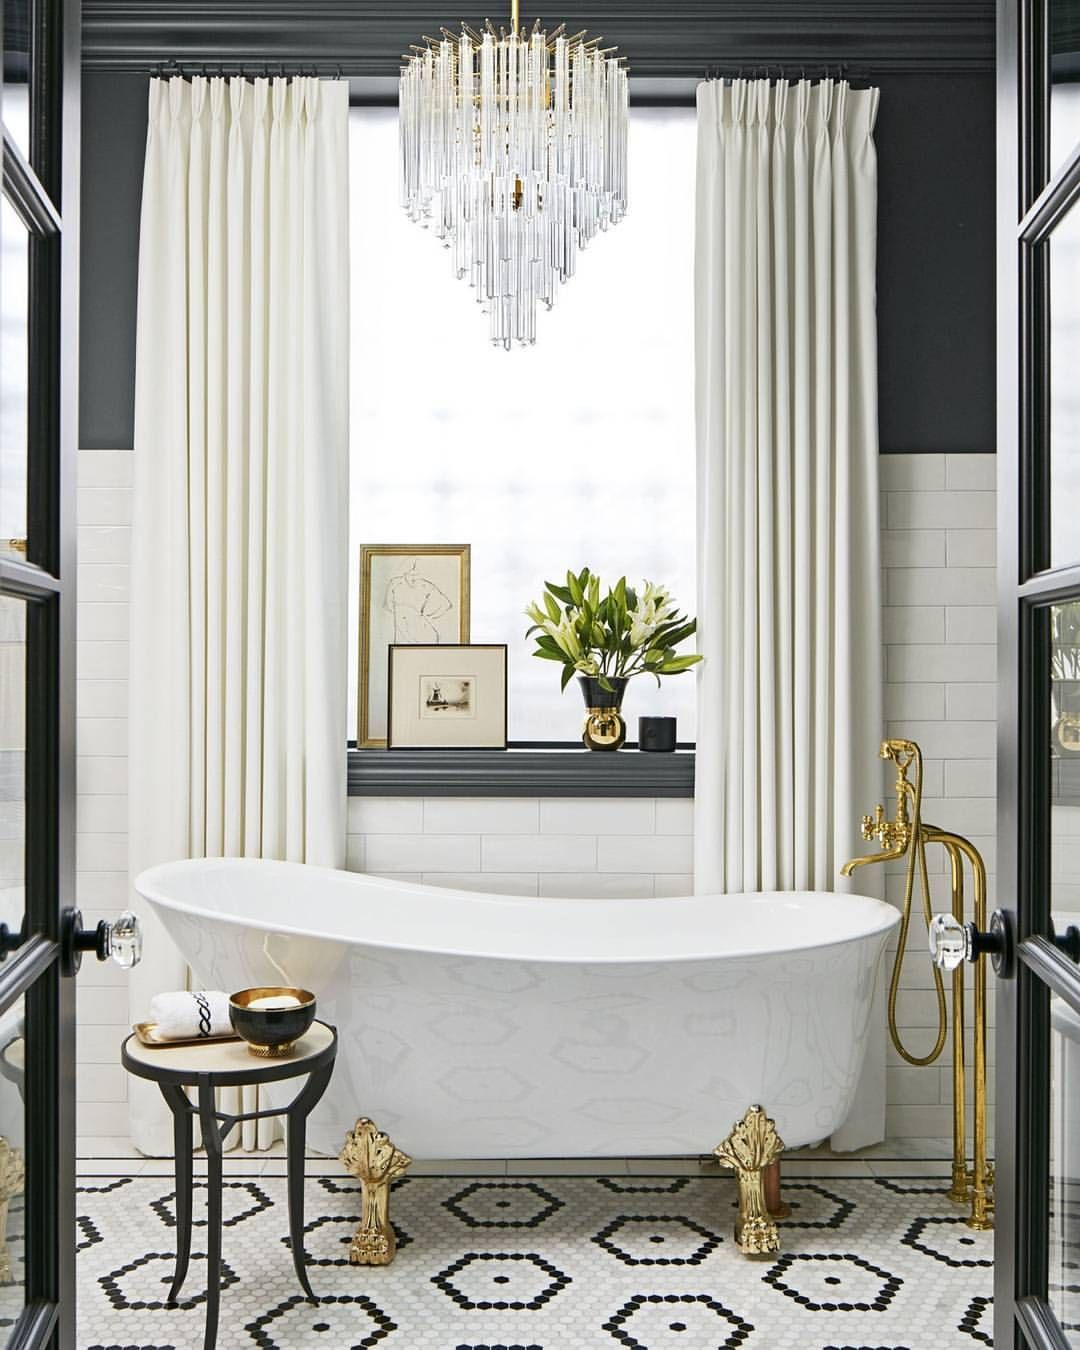 This Is The Most Beautiful Bathroom: Pin By Kristin Ness Peschka On Bath